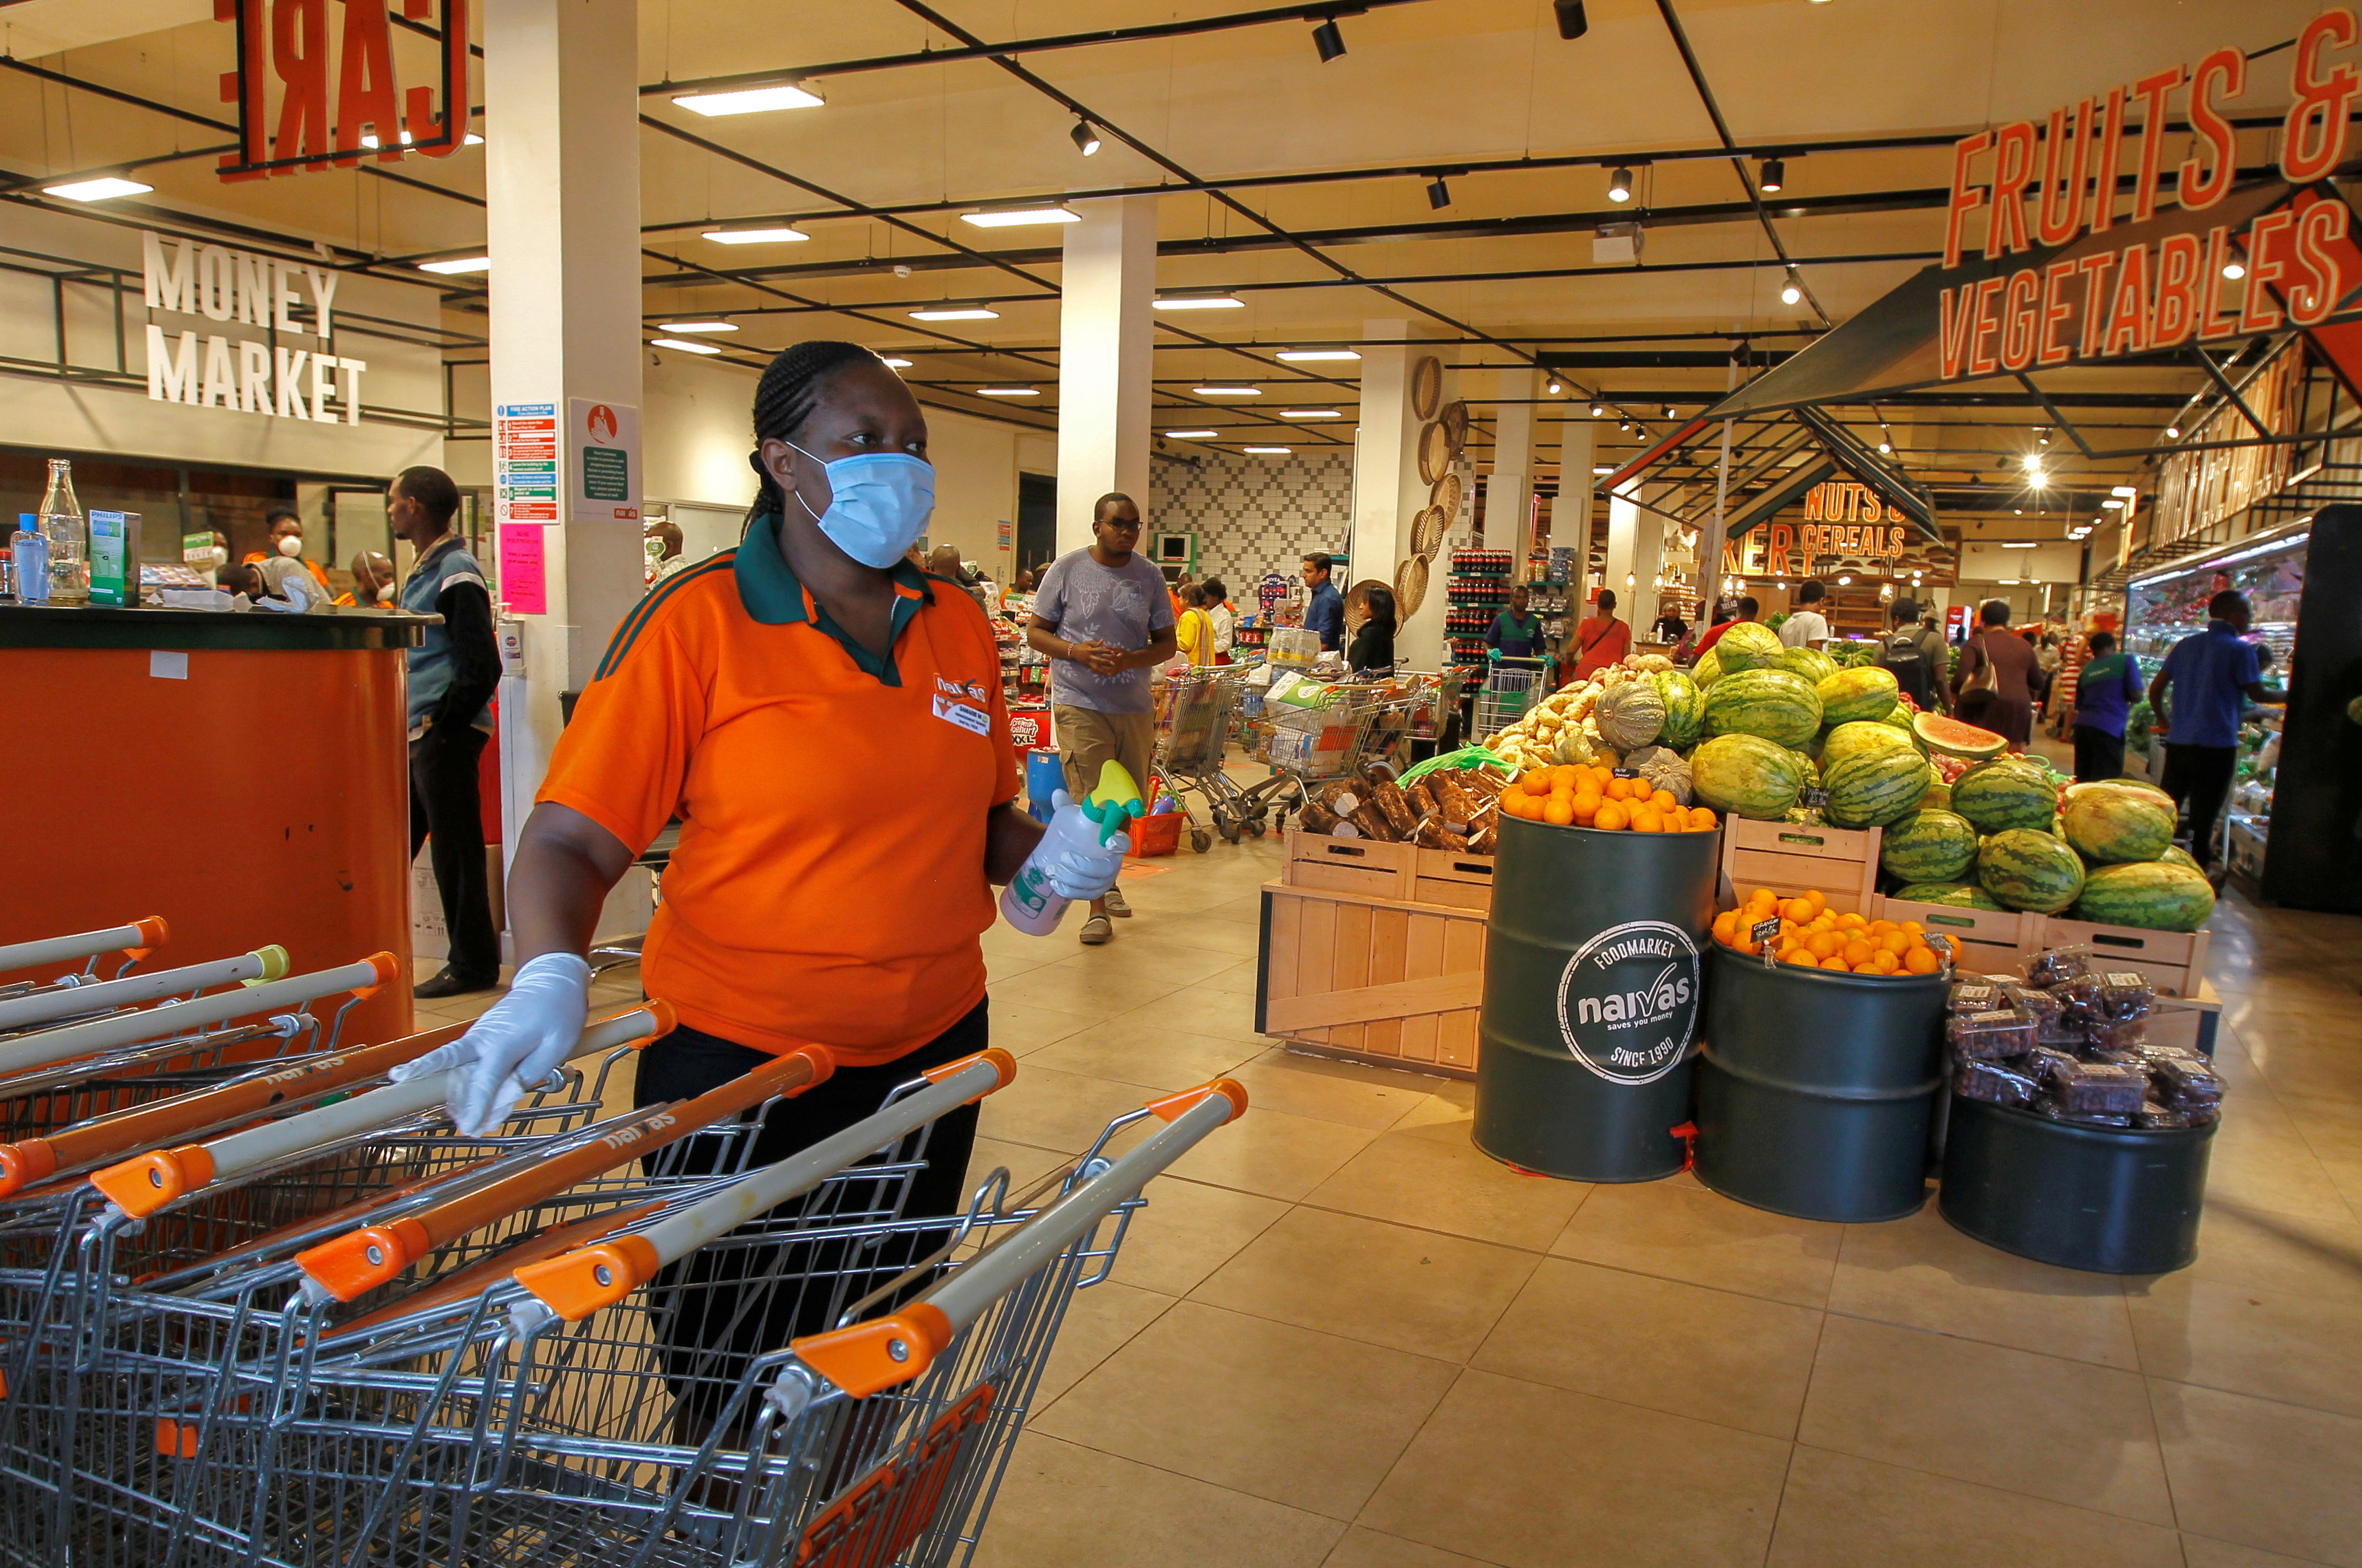 A worker disinfects shopping trolleys as customers shop in the Naivas Supermarket, to stock their homes amid concerns about the spread of coronavirus disease (COVID-19) in Nairobi, Kenya March 23, 2020. REUTERS/Njeri Mwangi